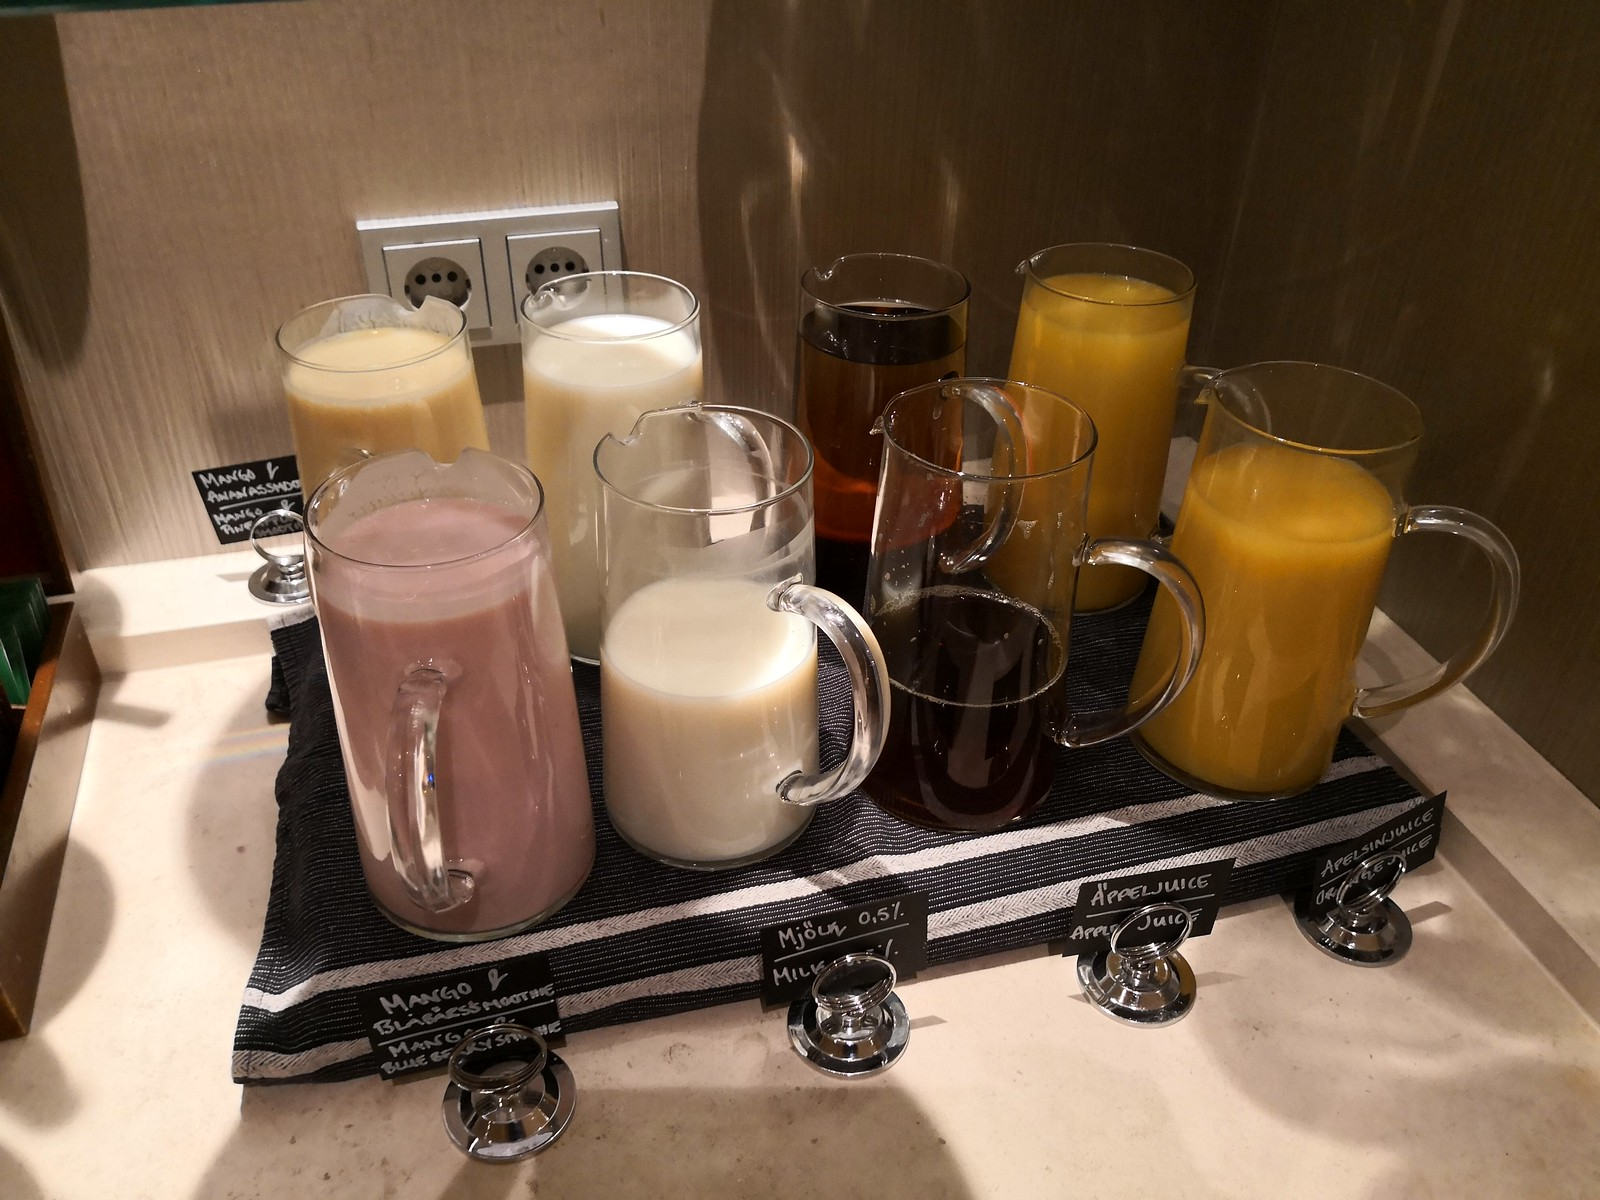 Juice, smoothies and milk